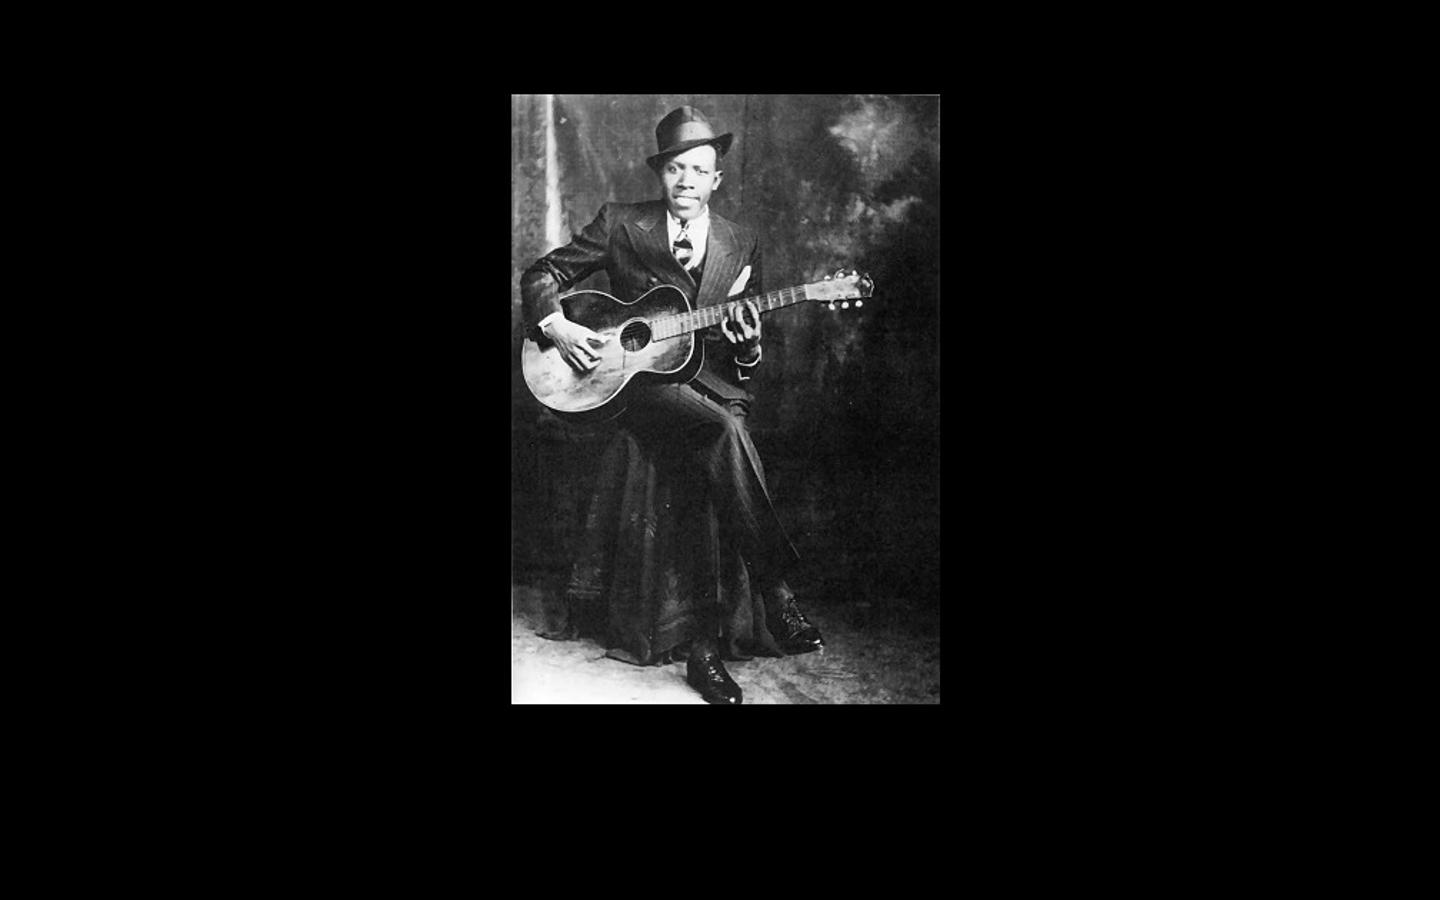 Robert Johnson, uno de los primeros padres del rock and roll